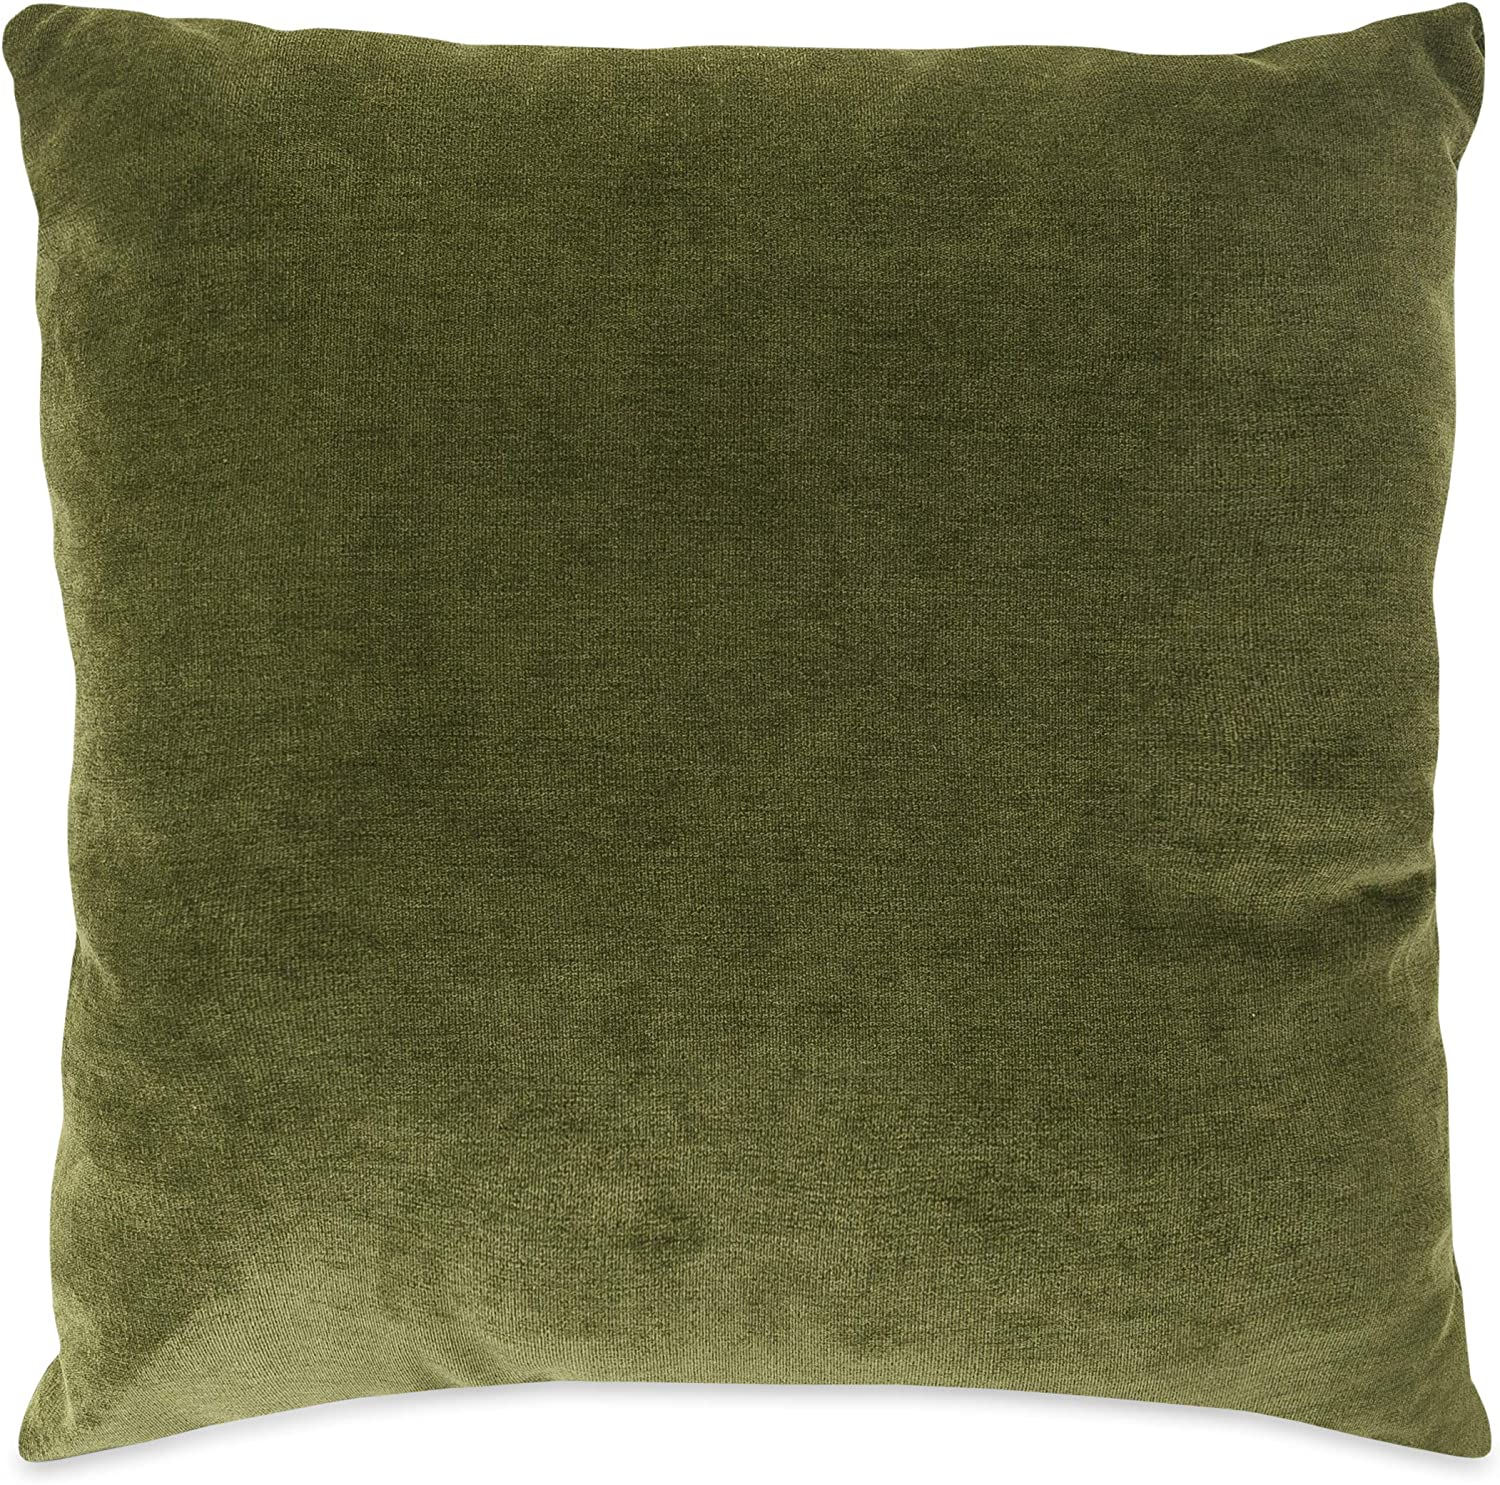 "Majestic Home Goods Fern Villa Indoor Large Pillow 20"" L x 8"" W x 20"" H"